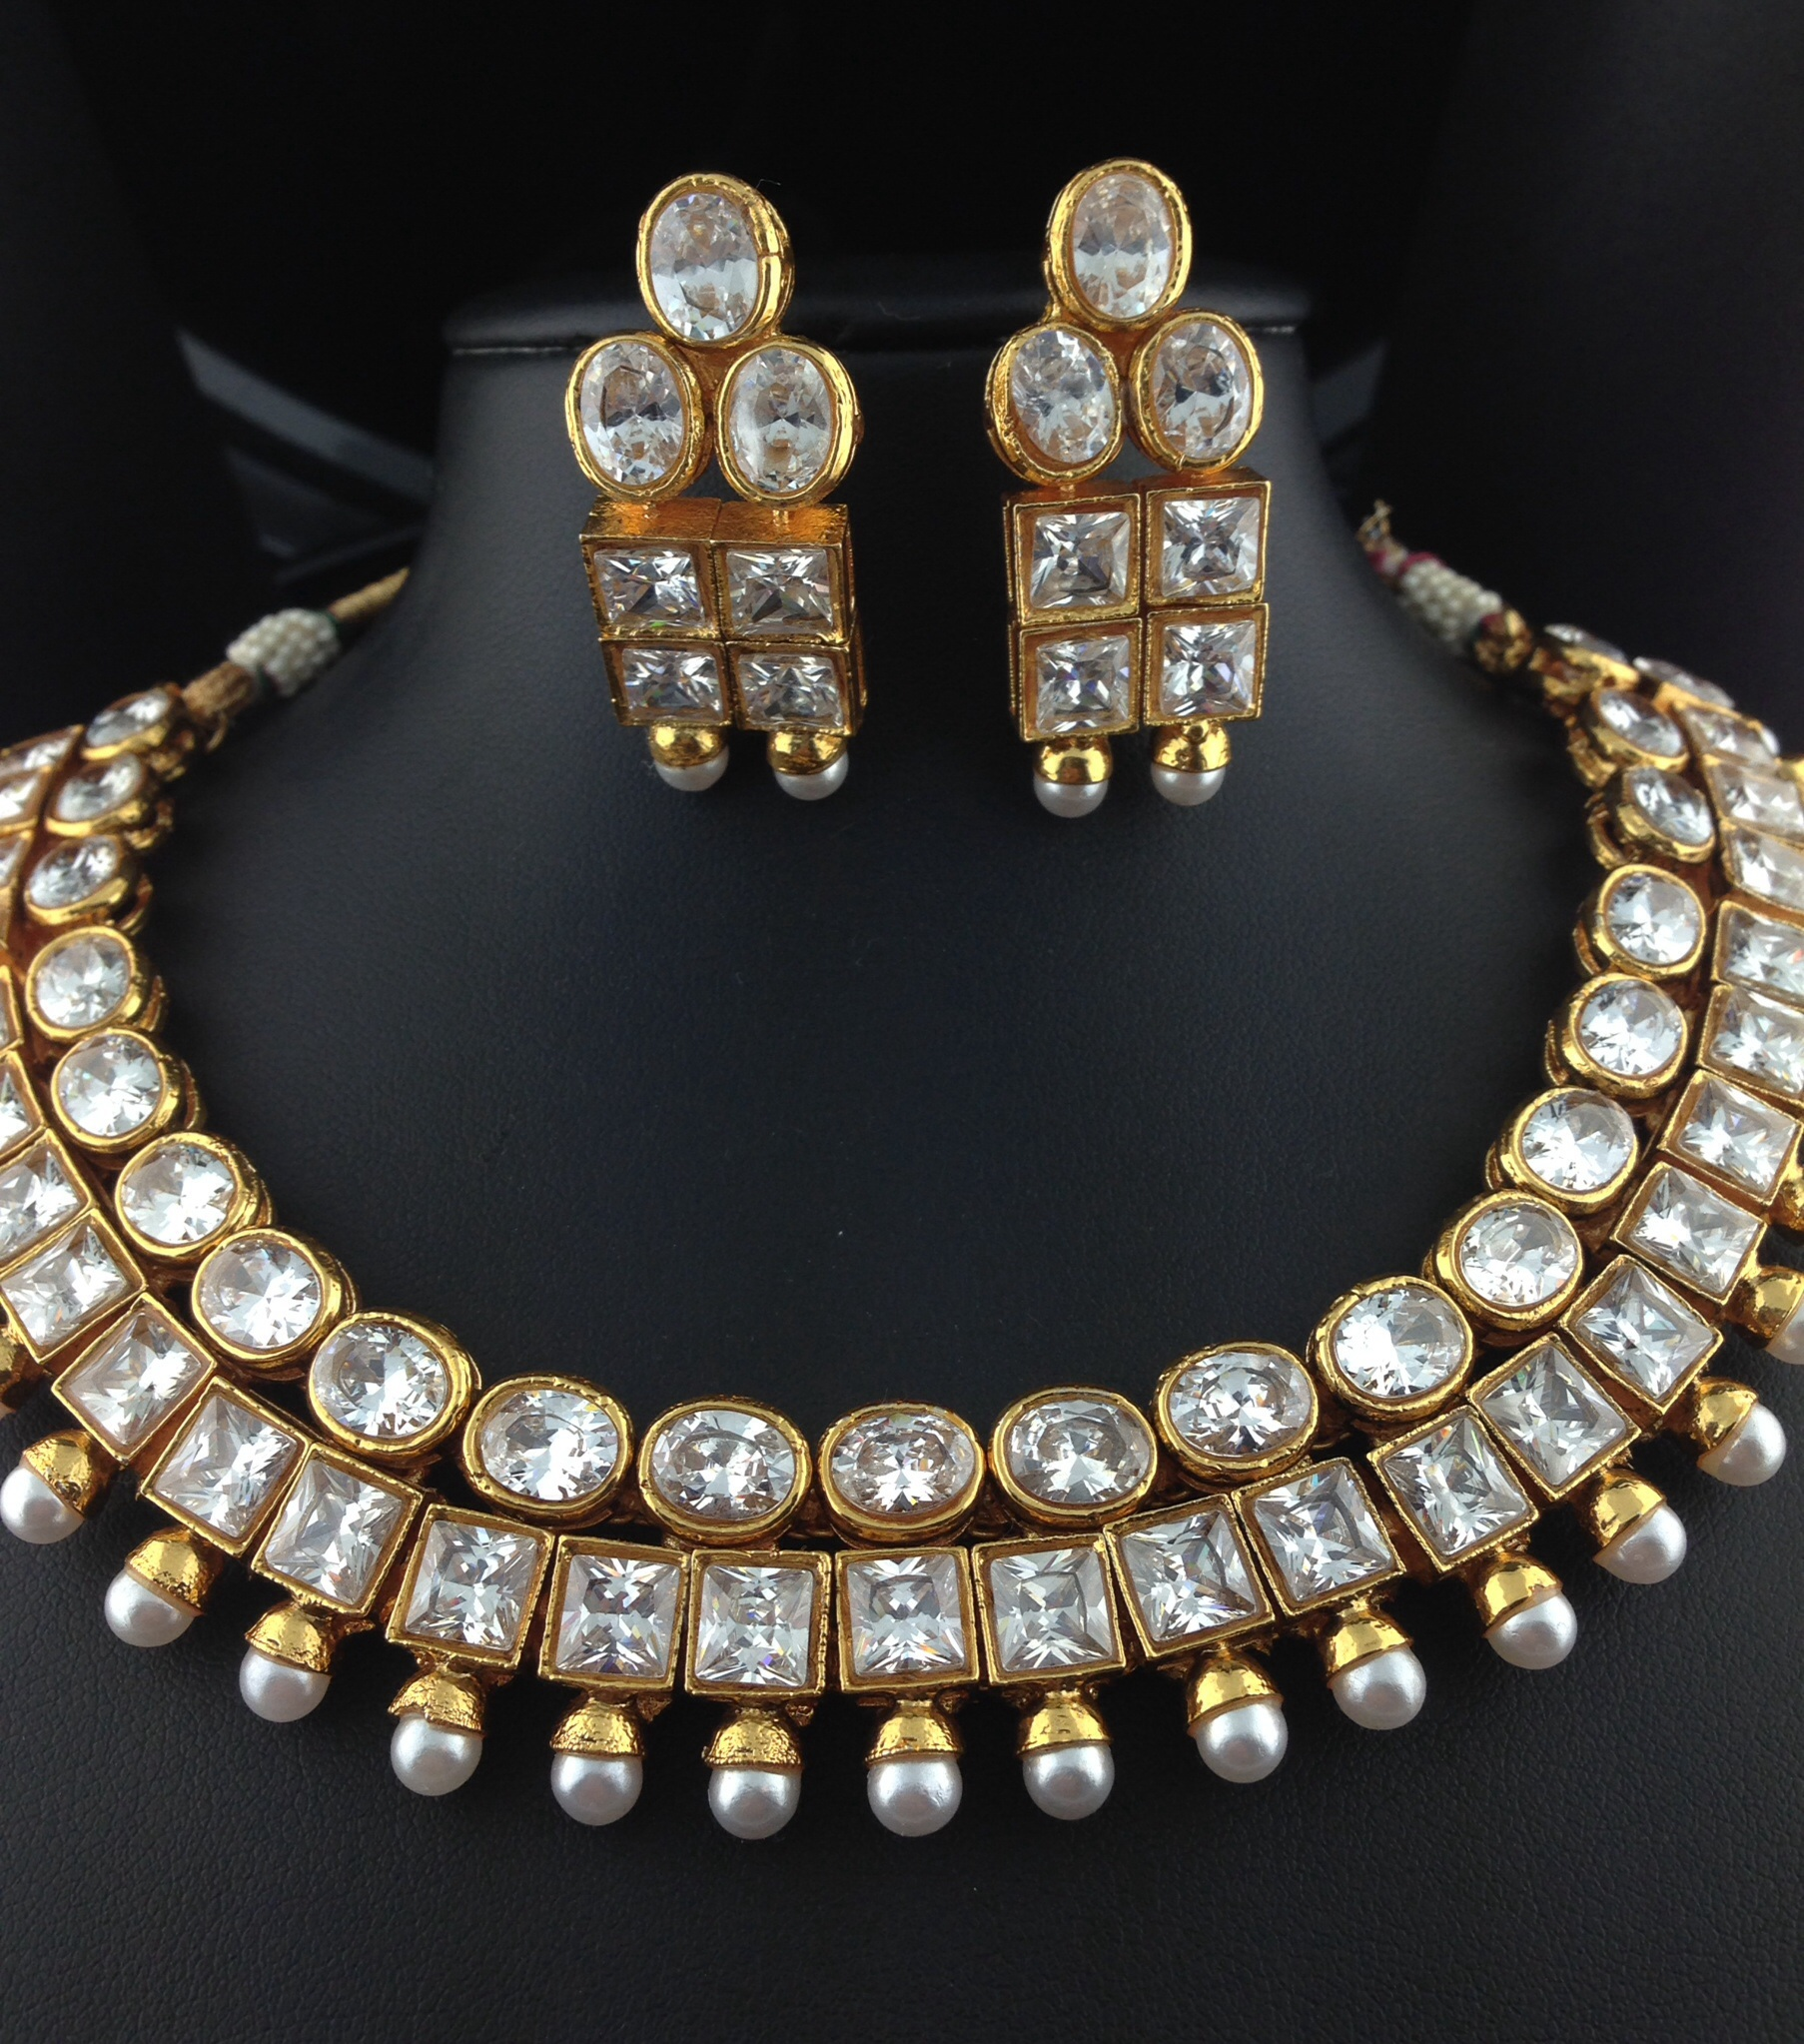 Elegant American Diamond Bridal Set With Crystals.